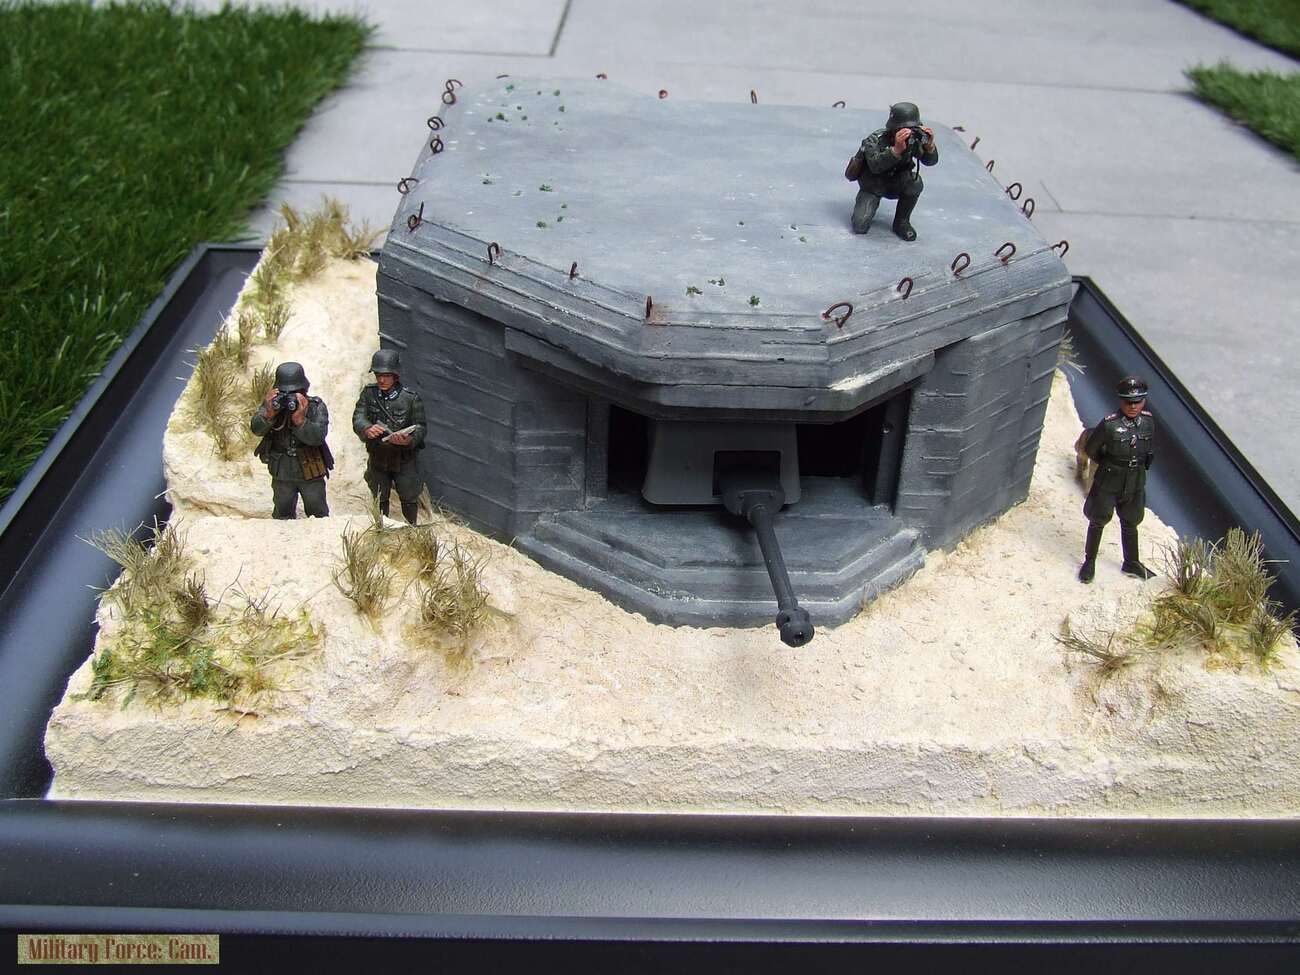 Atlantic wall casemat type 700. by vechtdalcollege